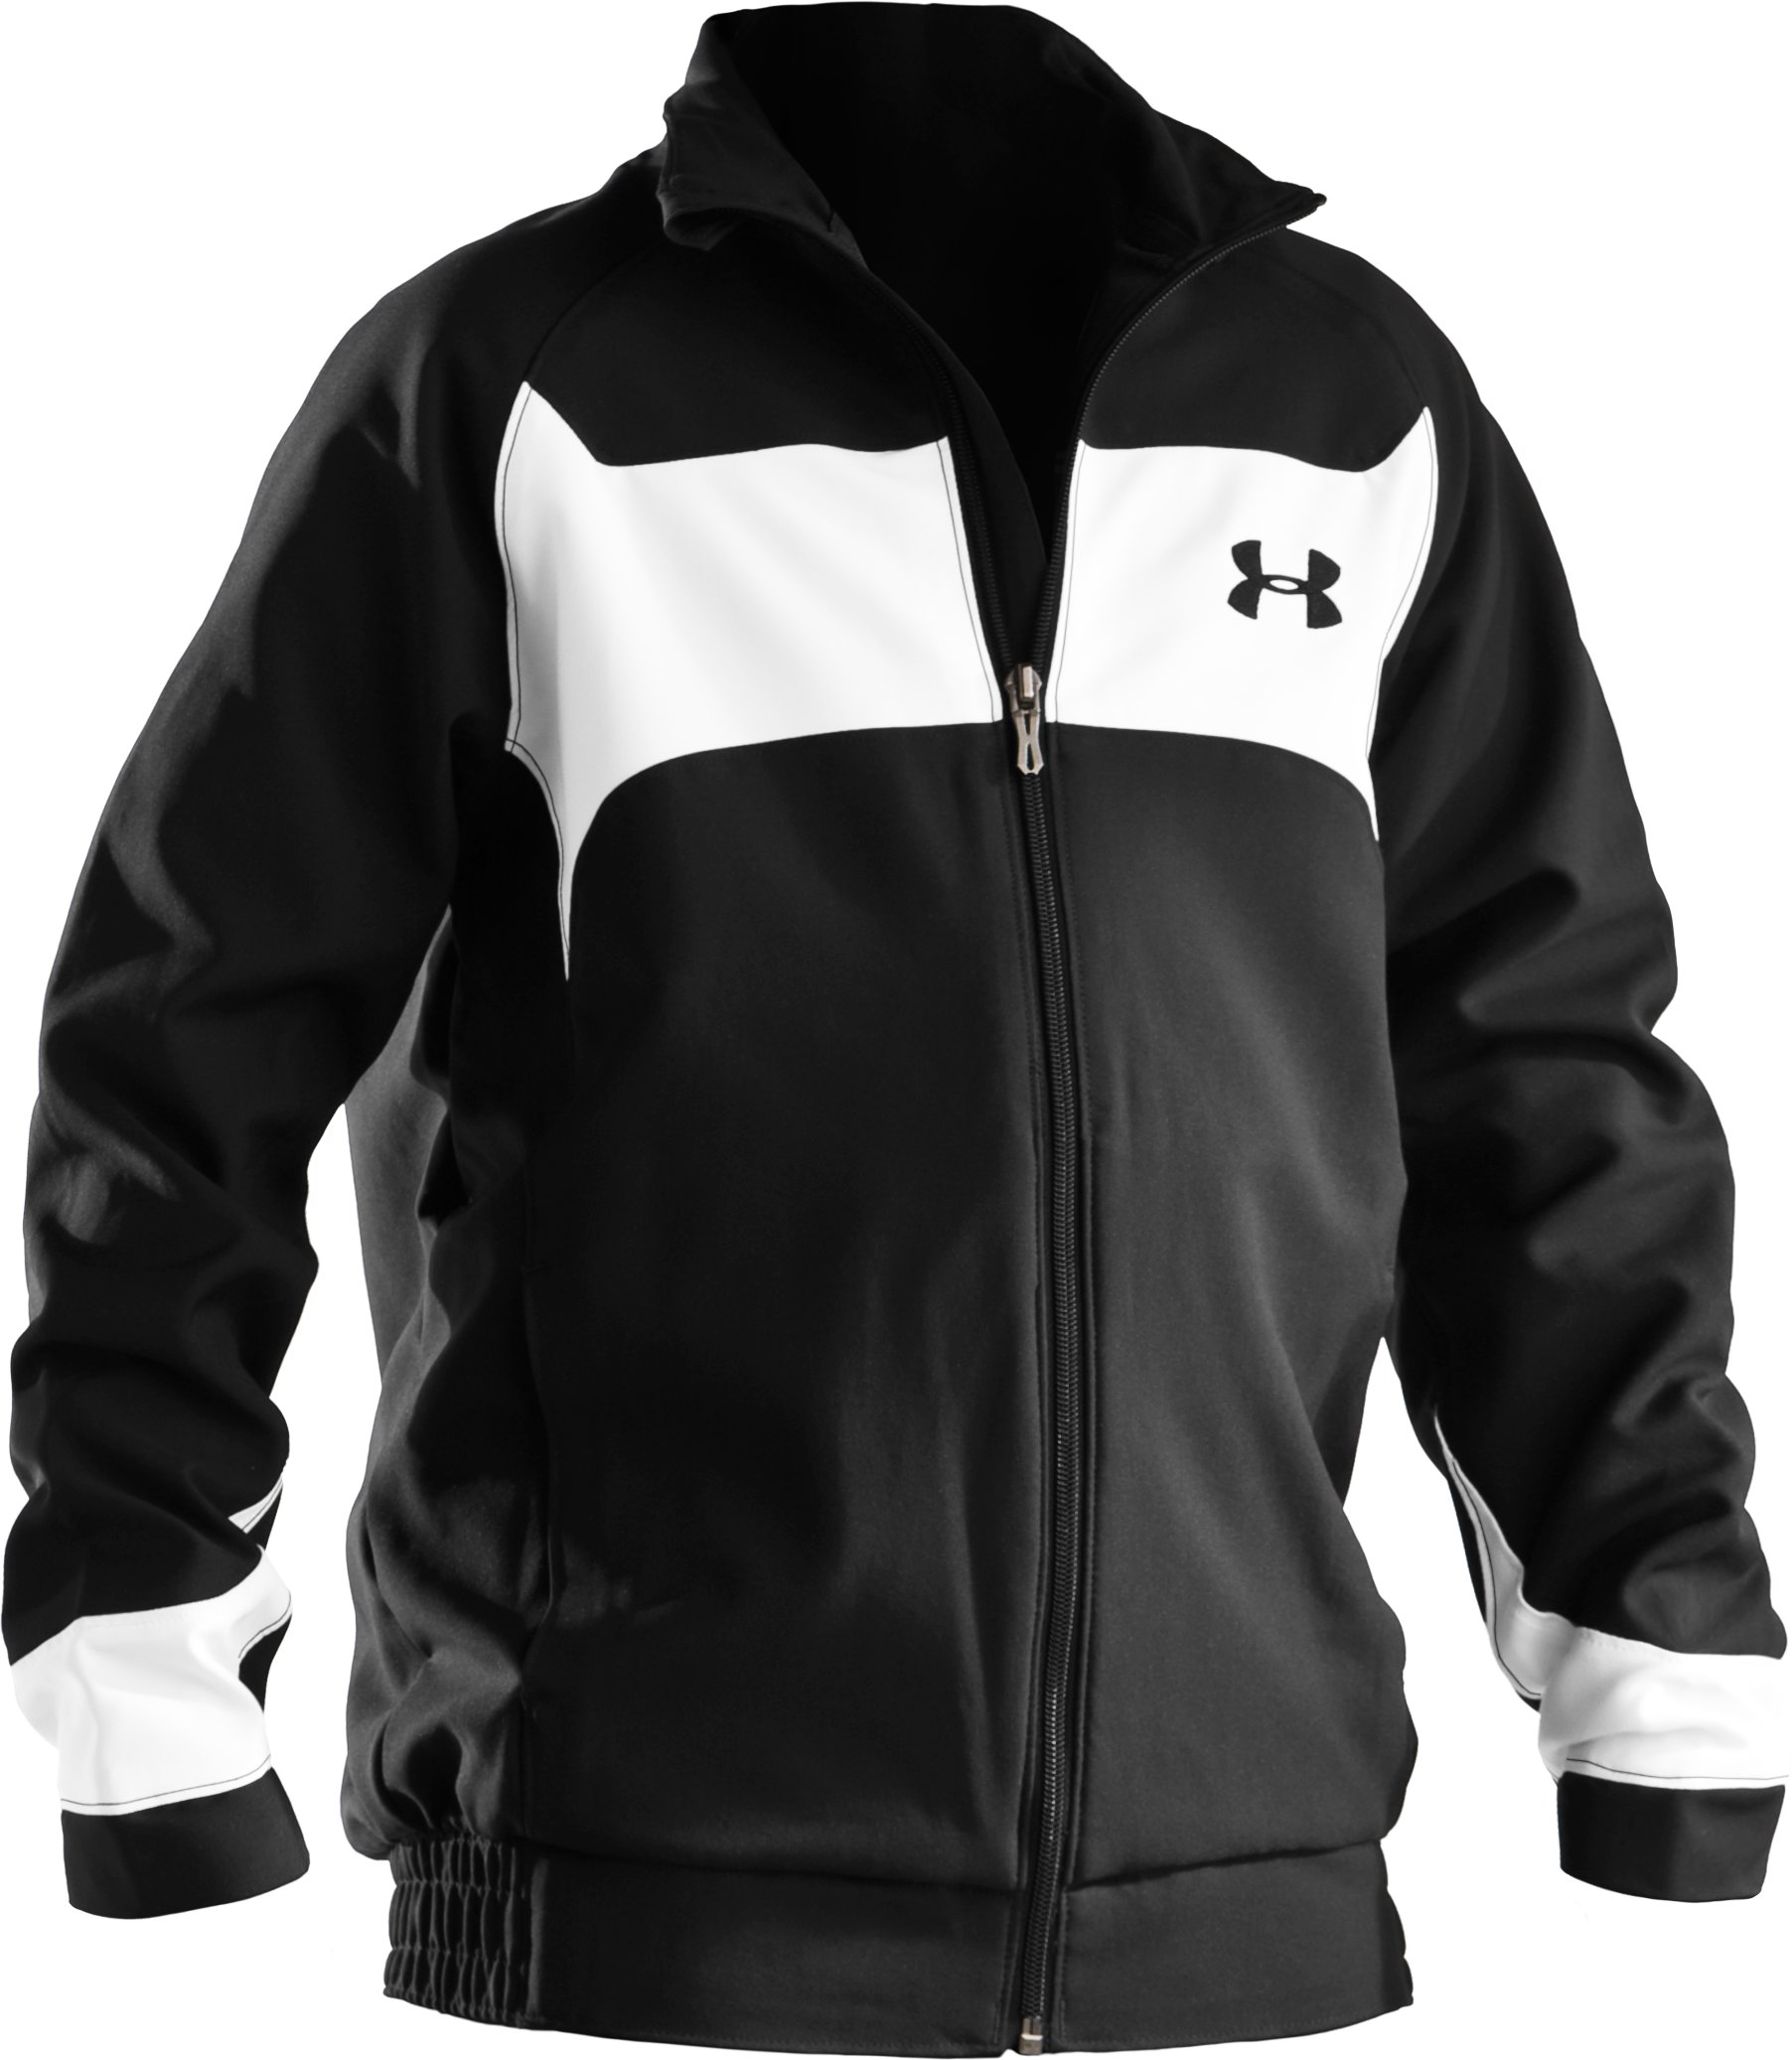 Boys' Ignition Woven Warm-Up Jacket, Black , undefined